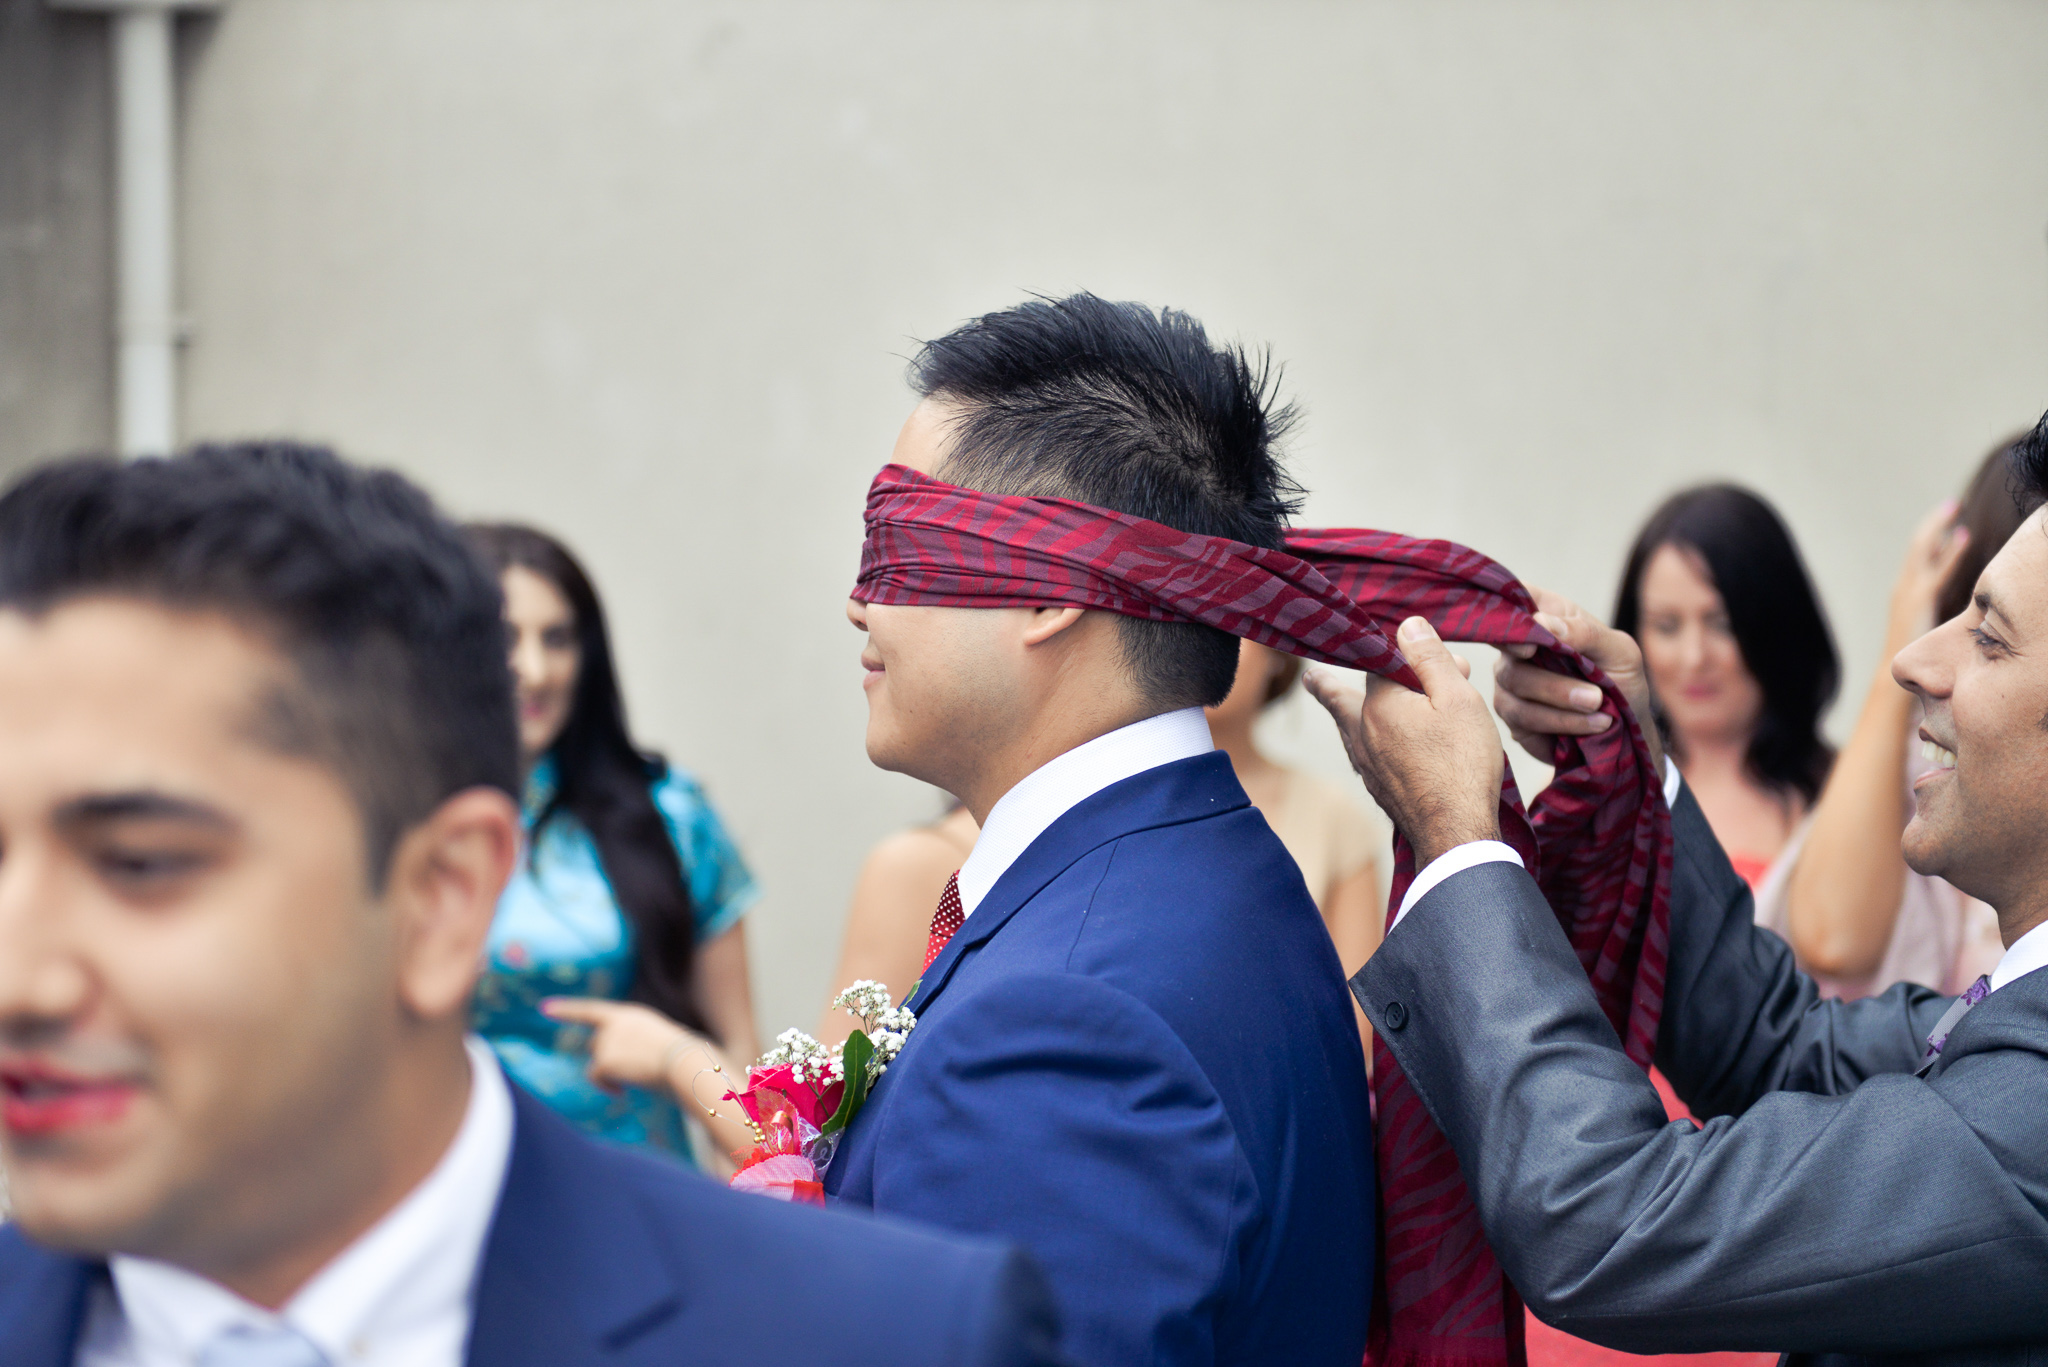 Wedding_Luke_Musharbash_Photographer_06.jpg